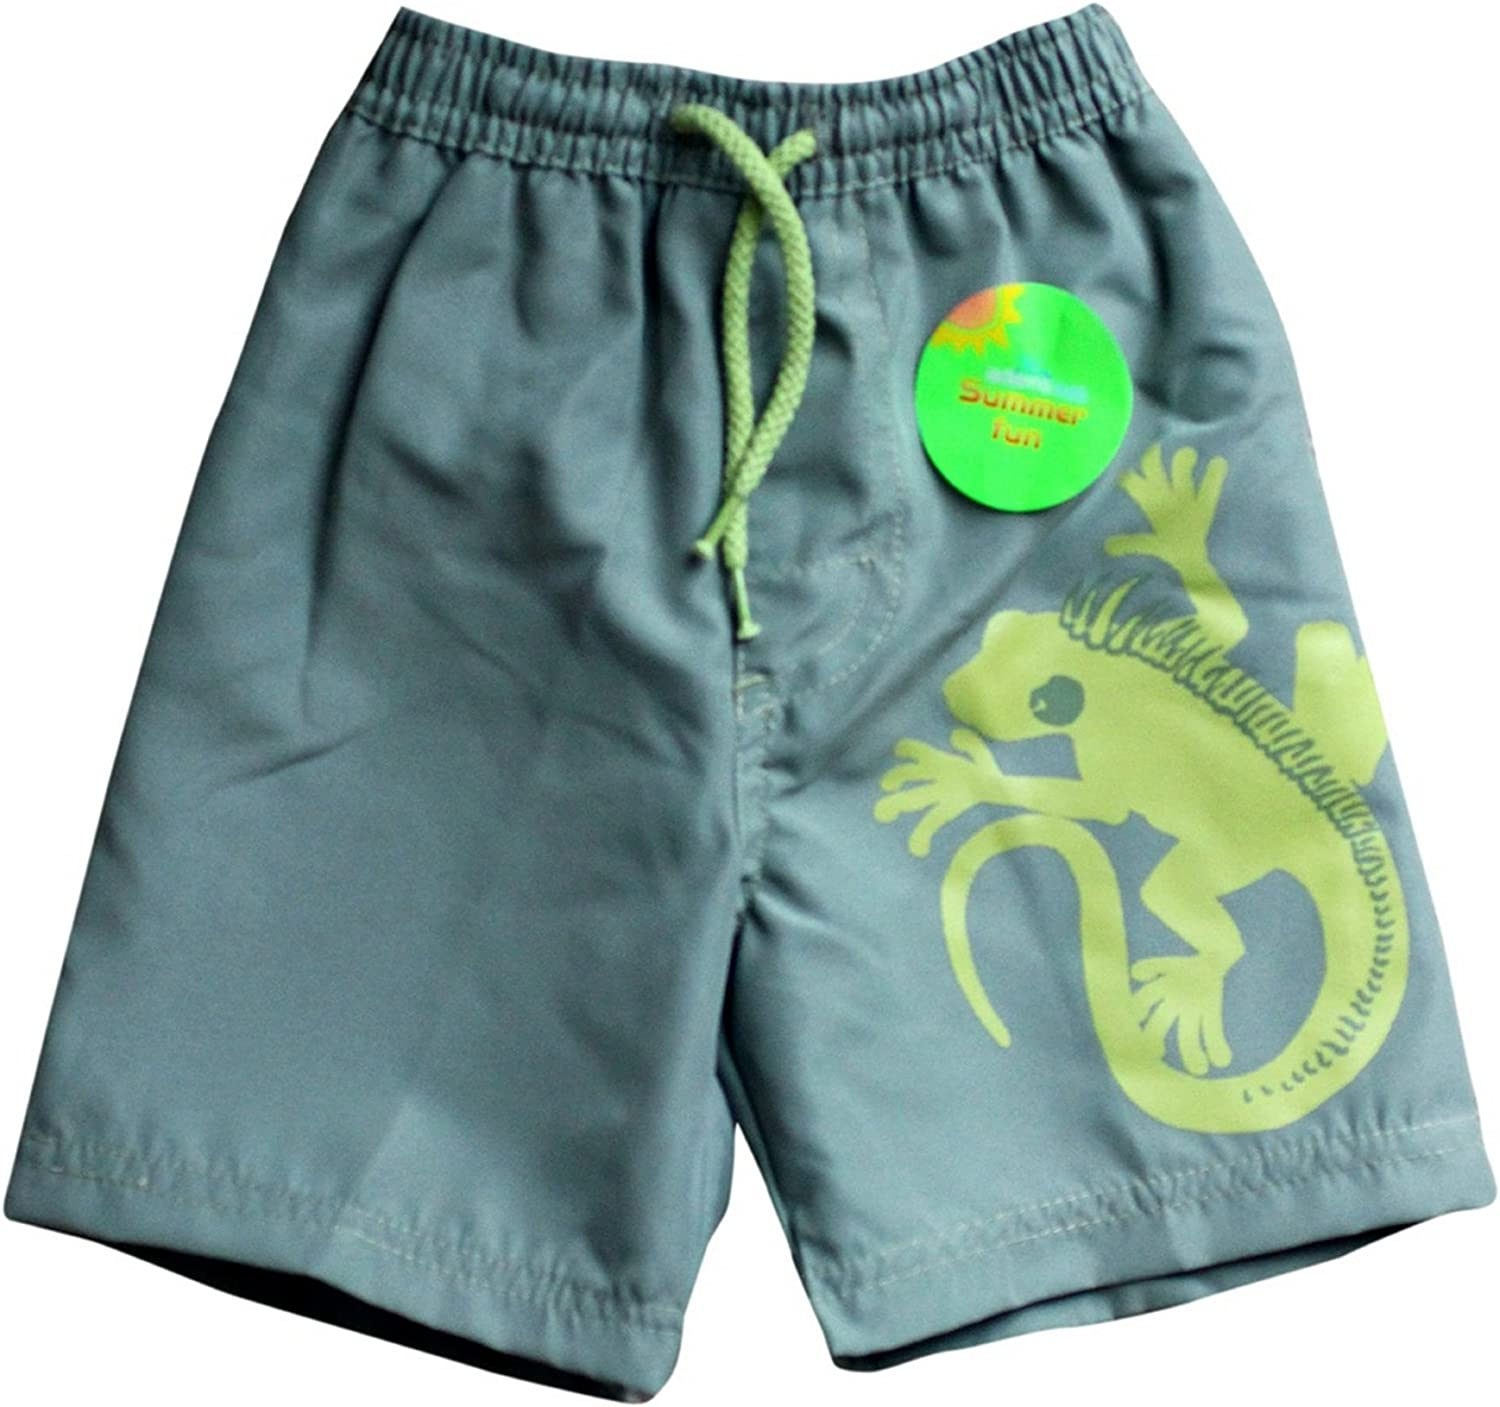 Adams kids Original Boys Military Green Beach Swimming Trunks Shorts 6 Month to 4 Years Age